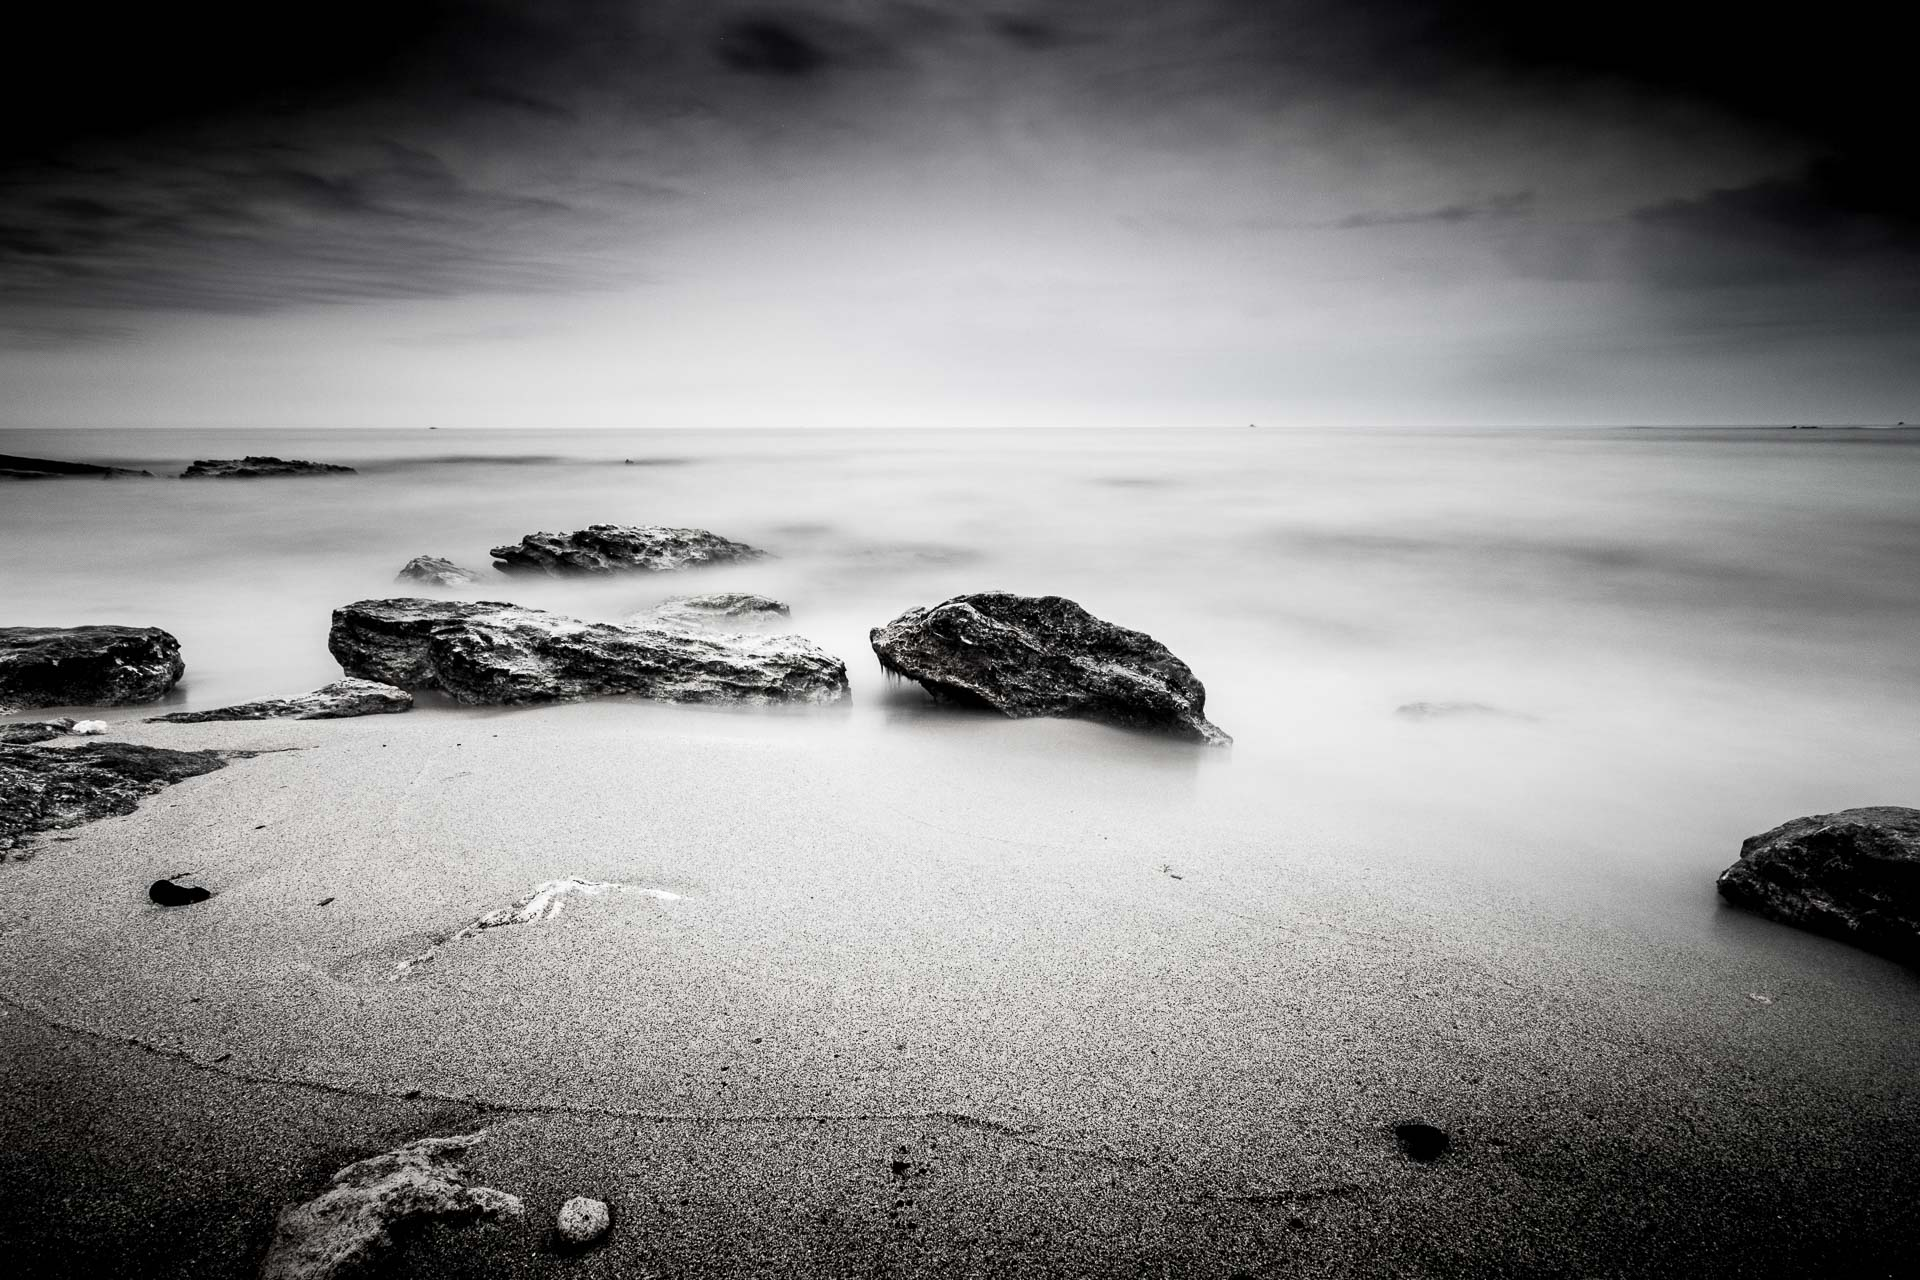 Seascape in black and white, long exposure photography